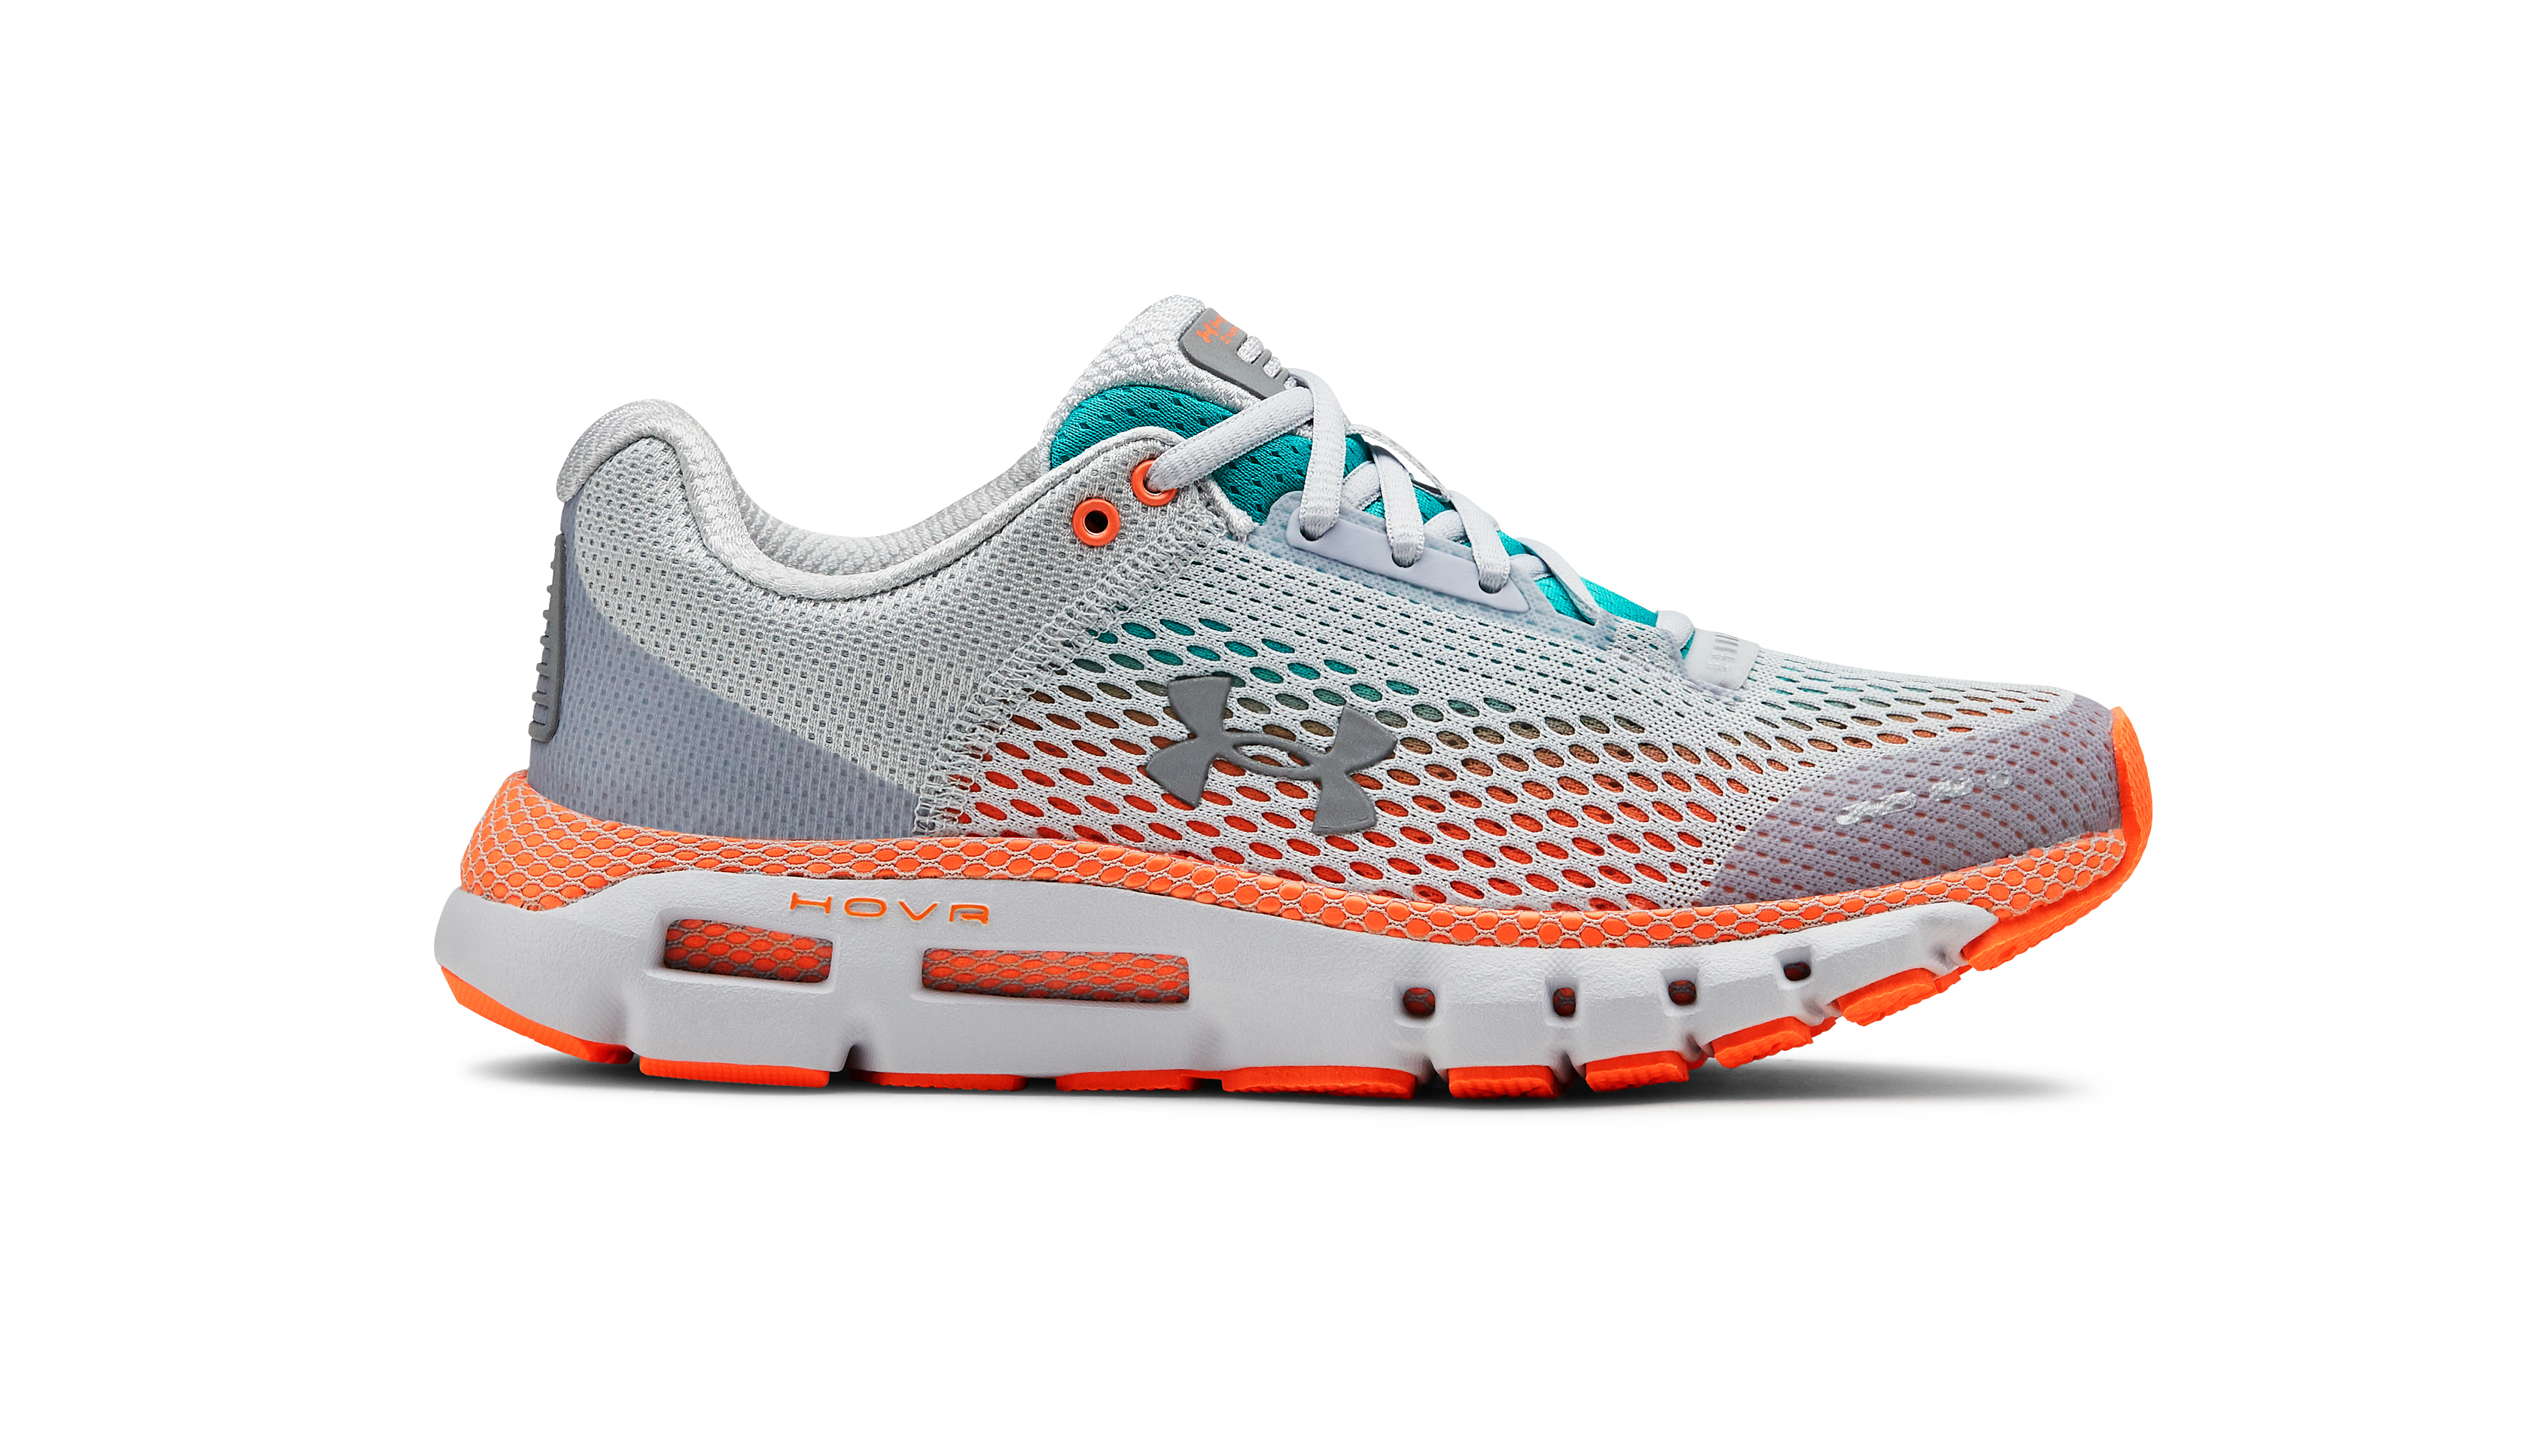 Under Armour trainers